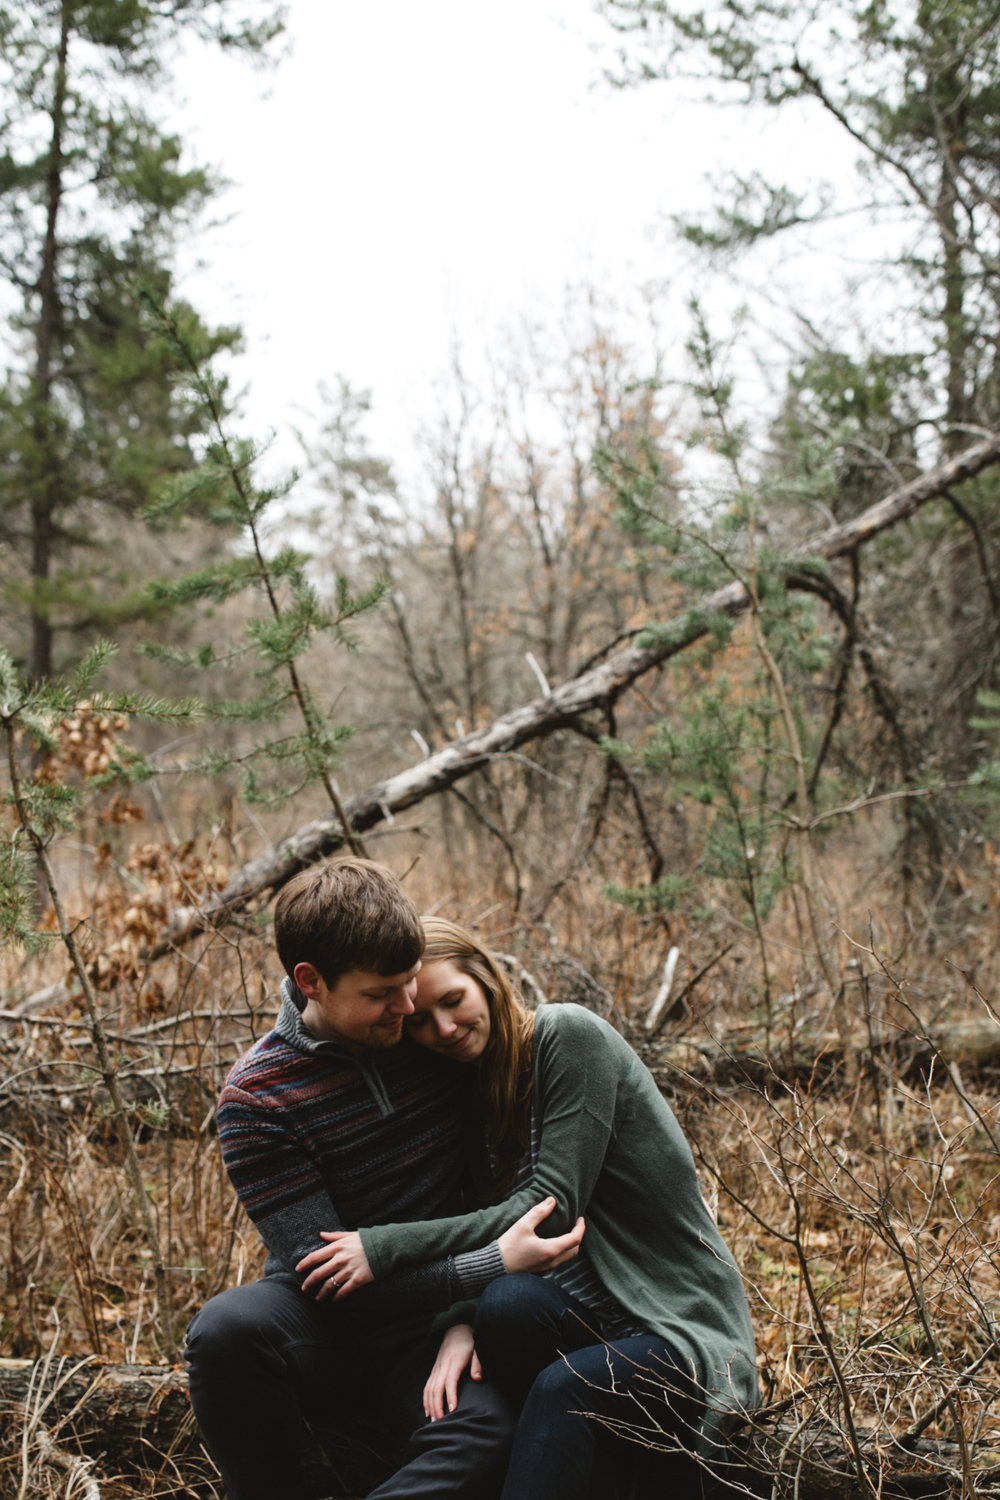 Romantic engagement session in the woods at the Northland Arboretum photographed by Britt DeZeeuw, Brainerd Minnesota wedding photographer